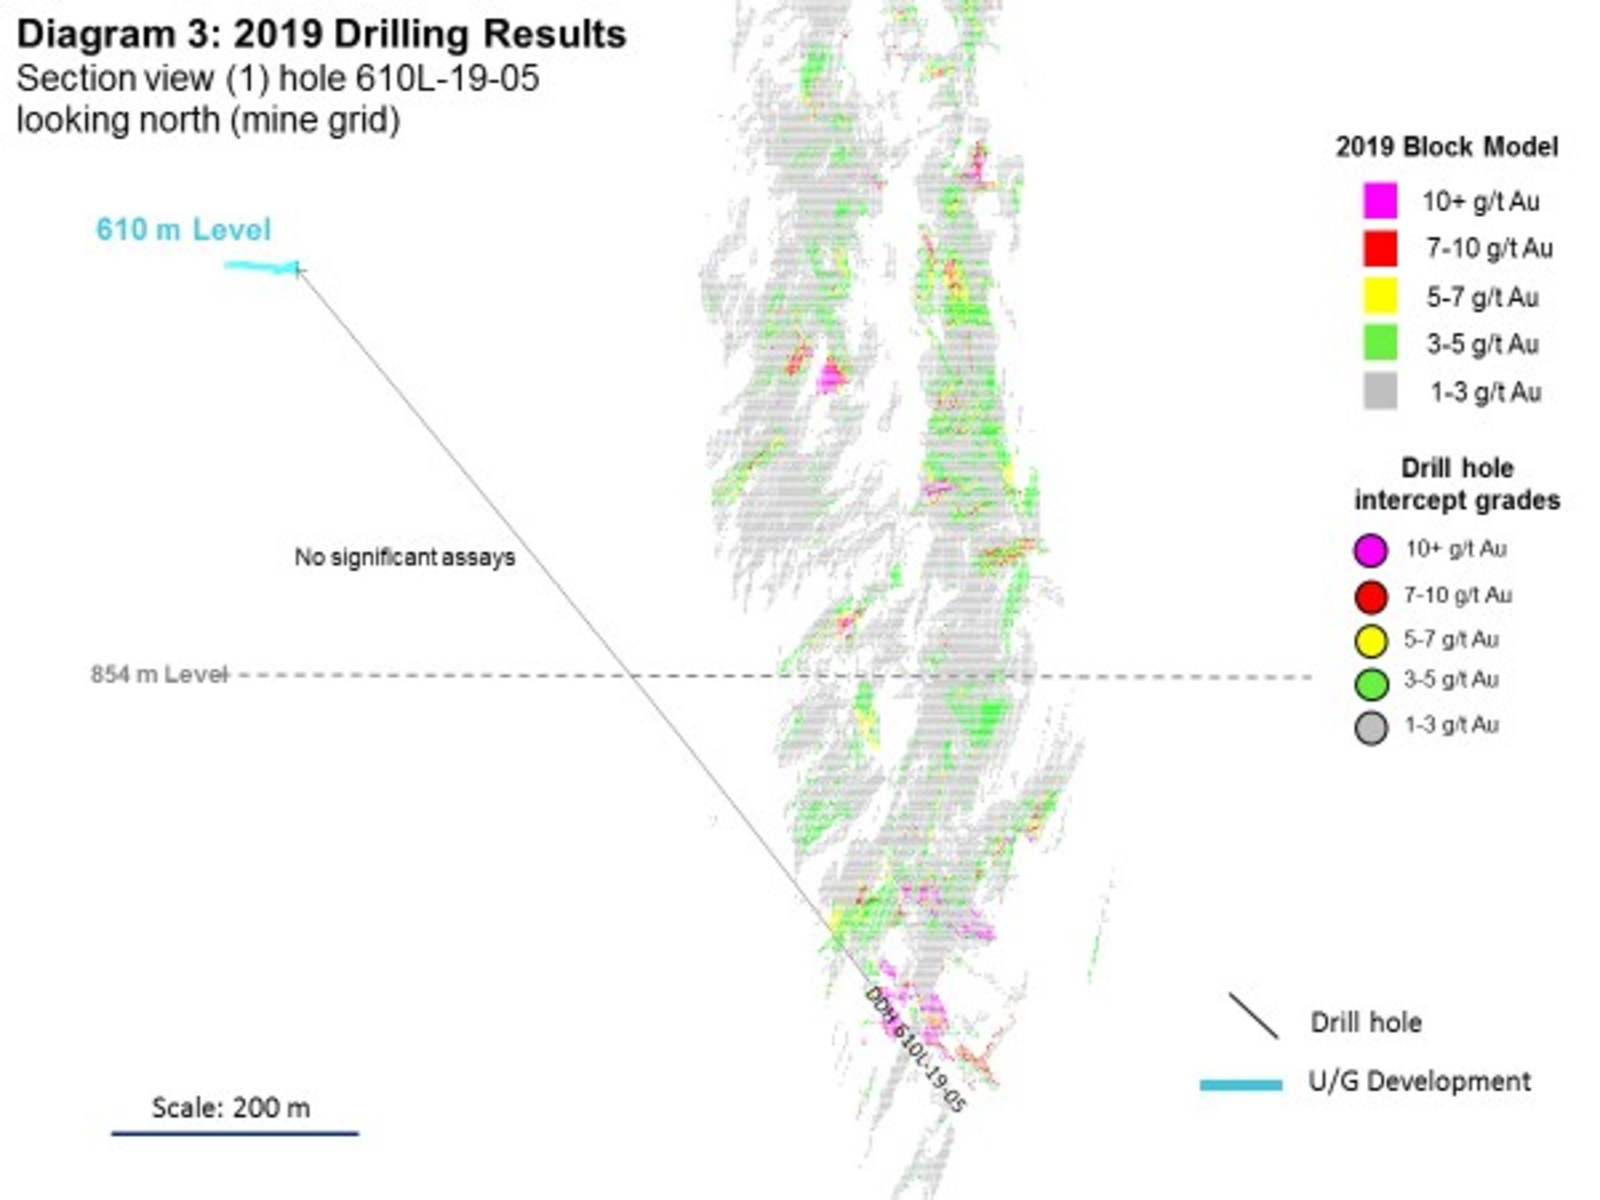 Diagram 3: 2019 Drilling Results